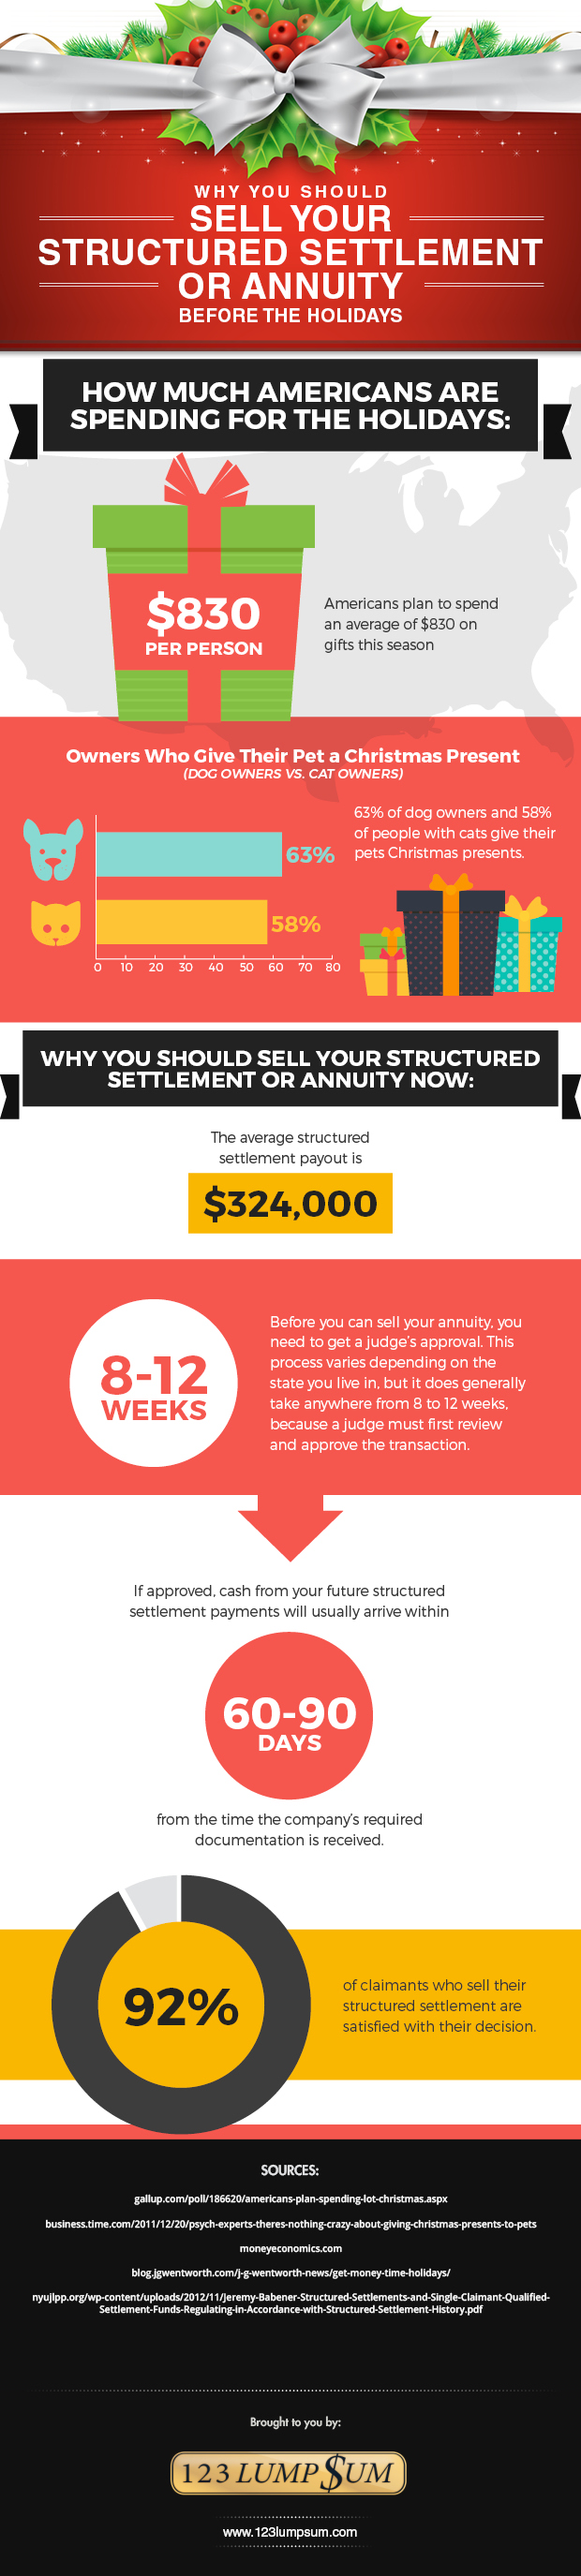 why you should sell your structured settlement